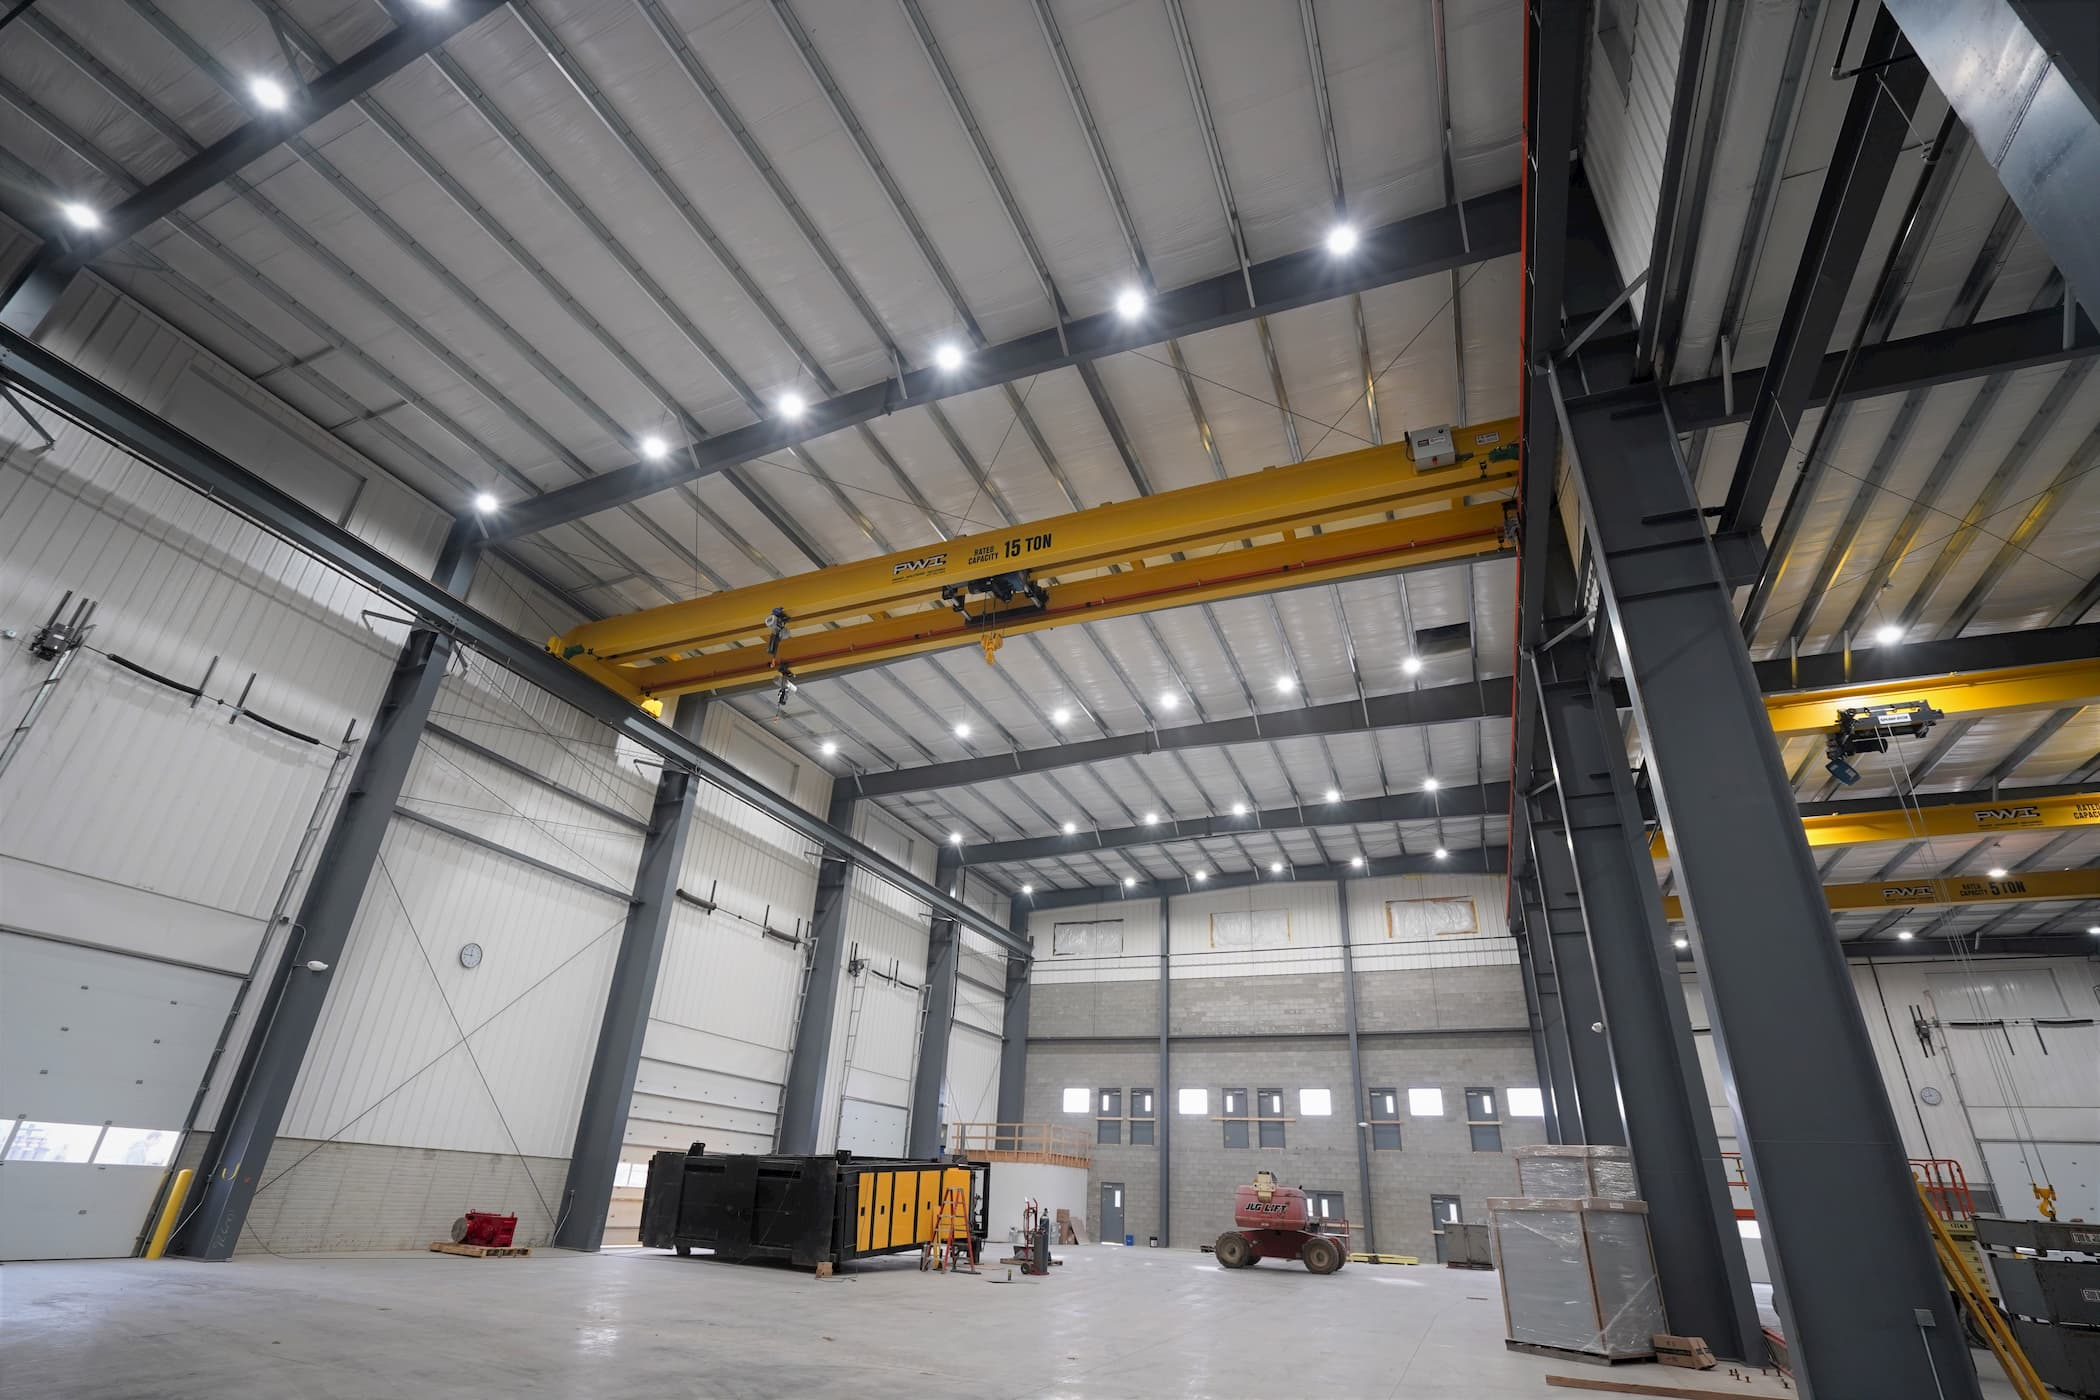 15 Ton Overhead Bridge Crane